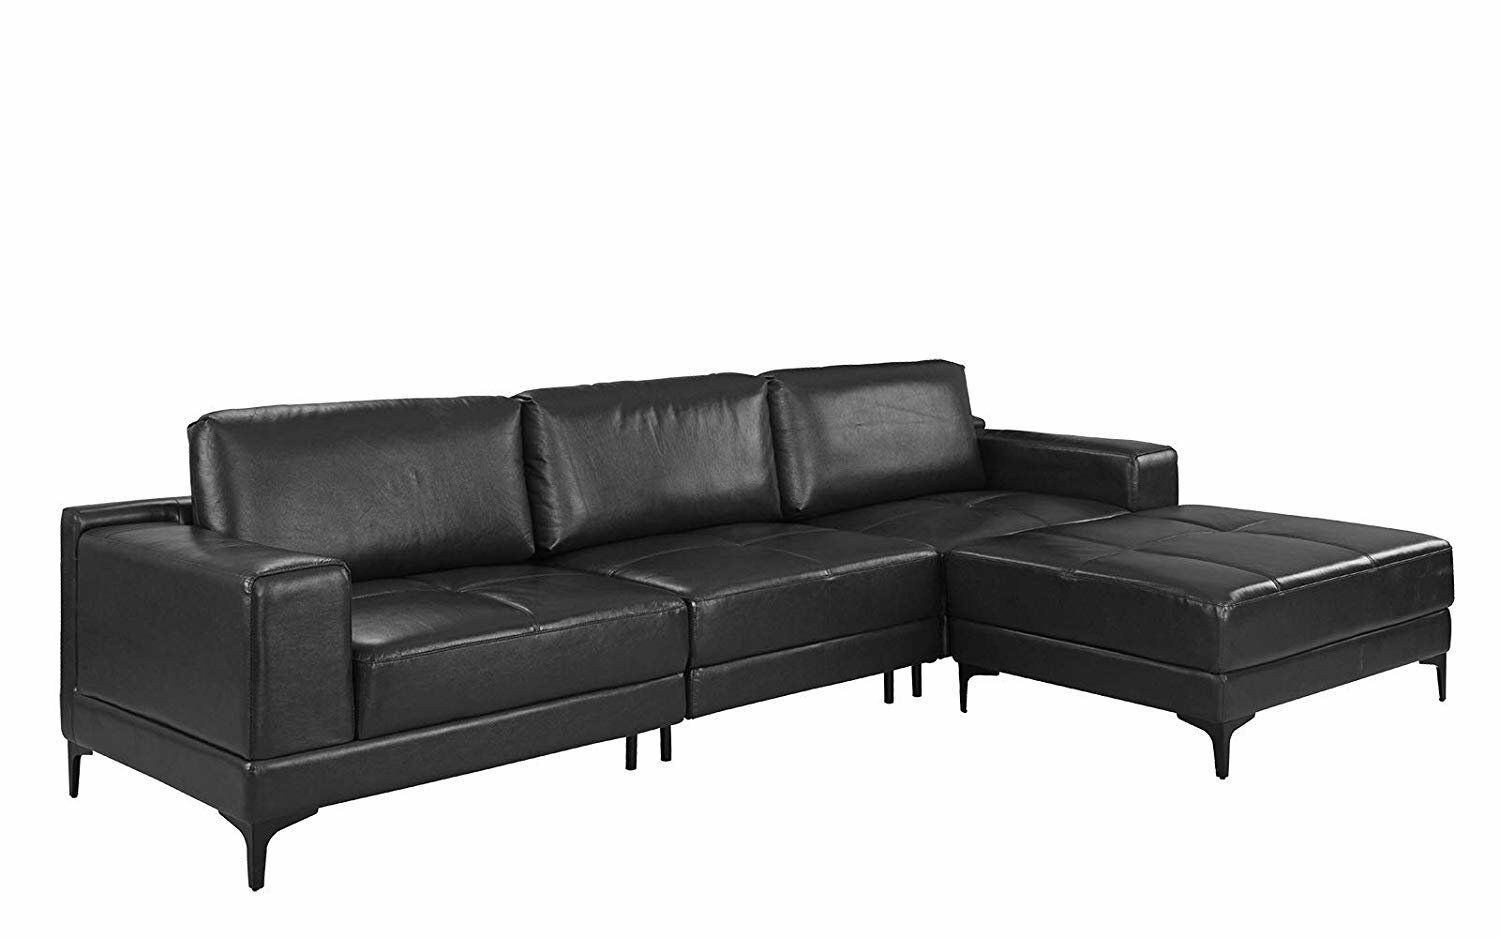 Pleasant Modern Leather Sectional Sofa 114 9 Inch Living Room L Shape Couch Black Inzonedesignstudio Interior Chair Design Inzonedesignstudiocom